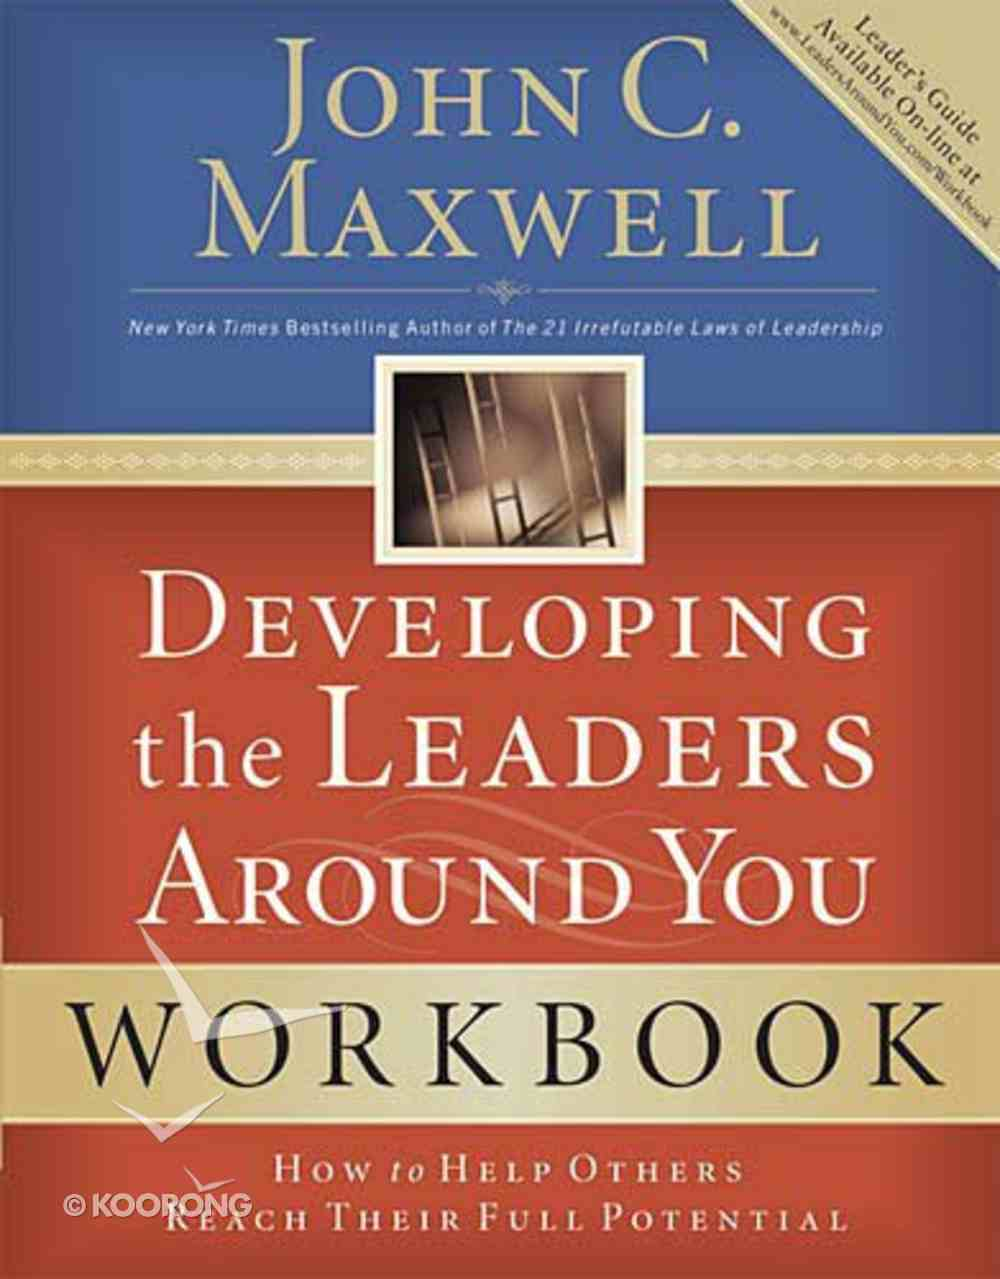 Developing the Leaders Around You: How to Help Others Reach Their Full Potential (Workbook) Paperback